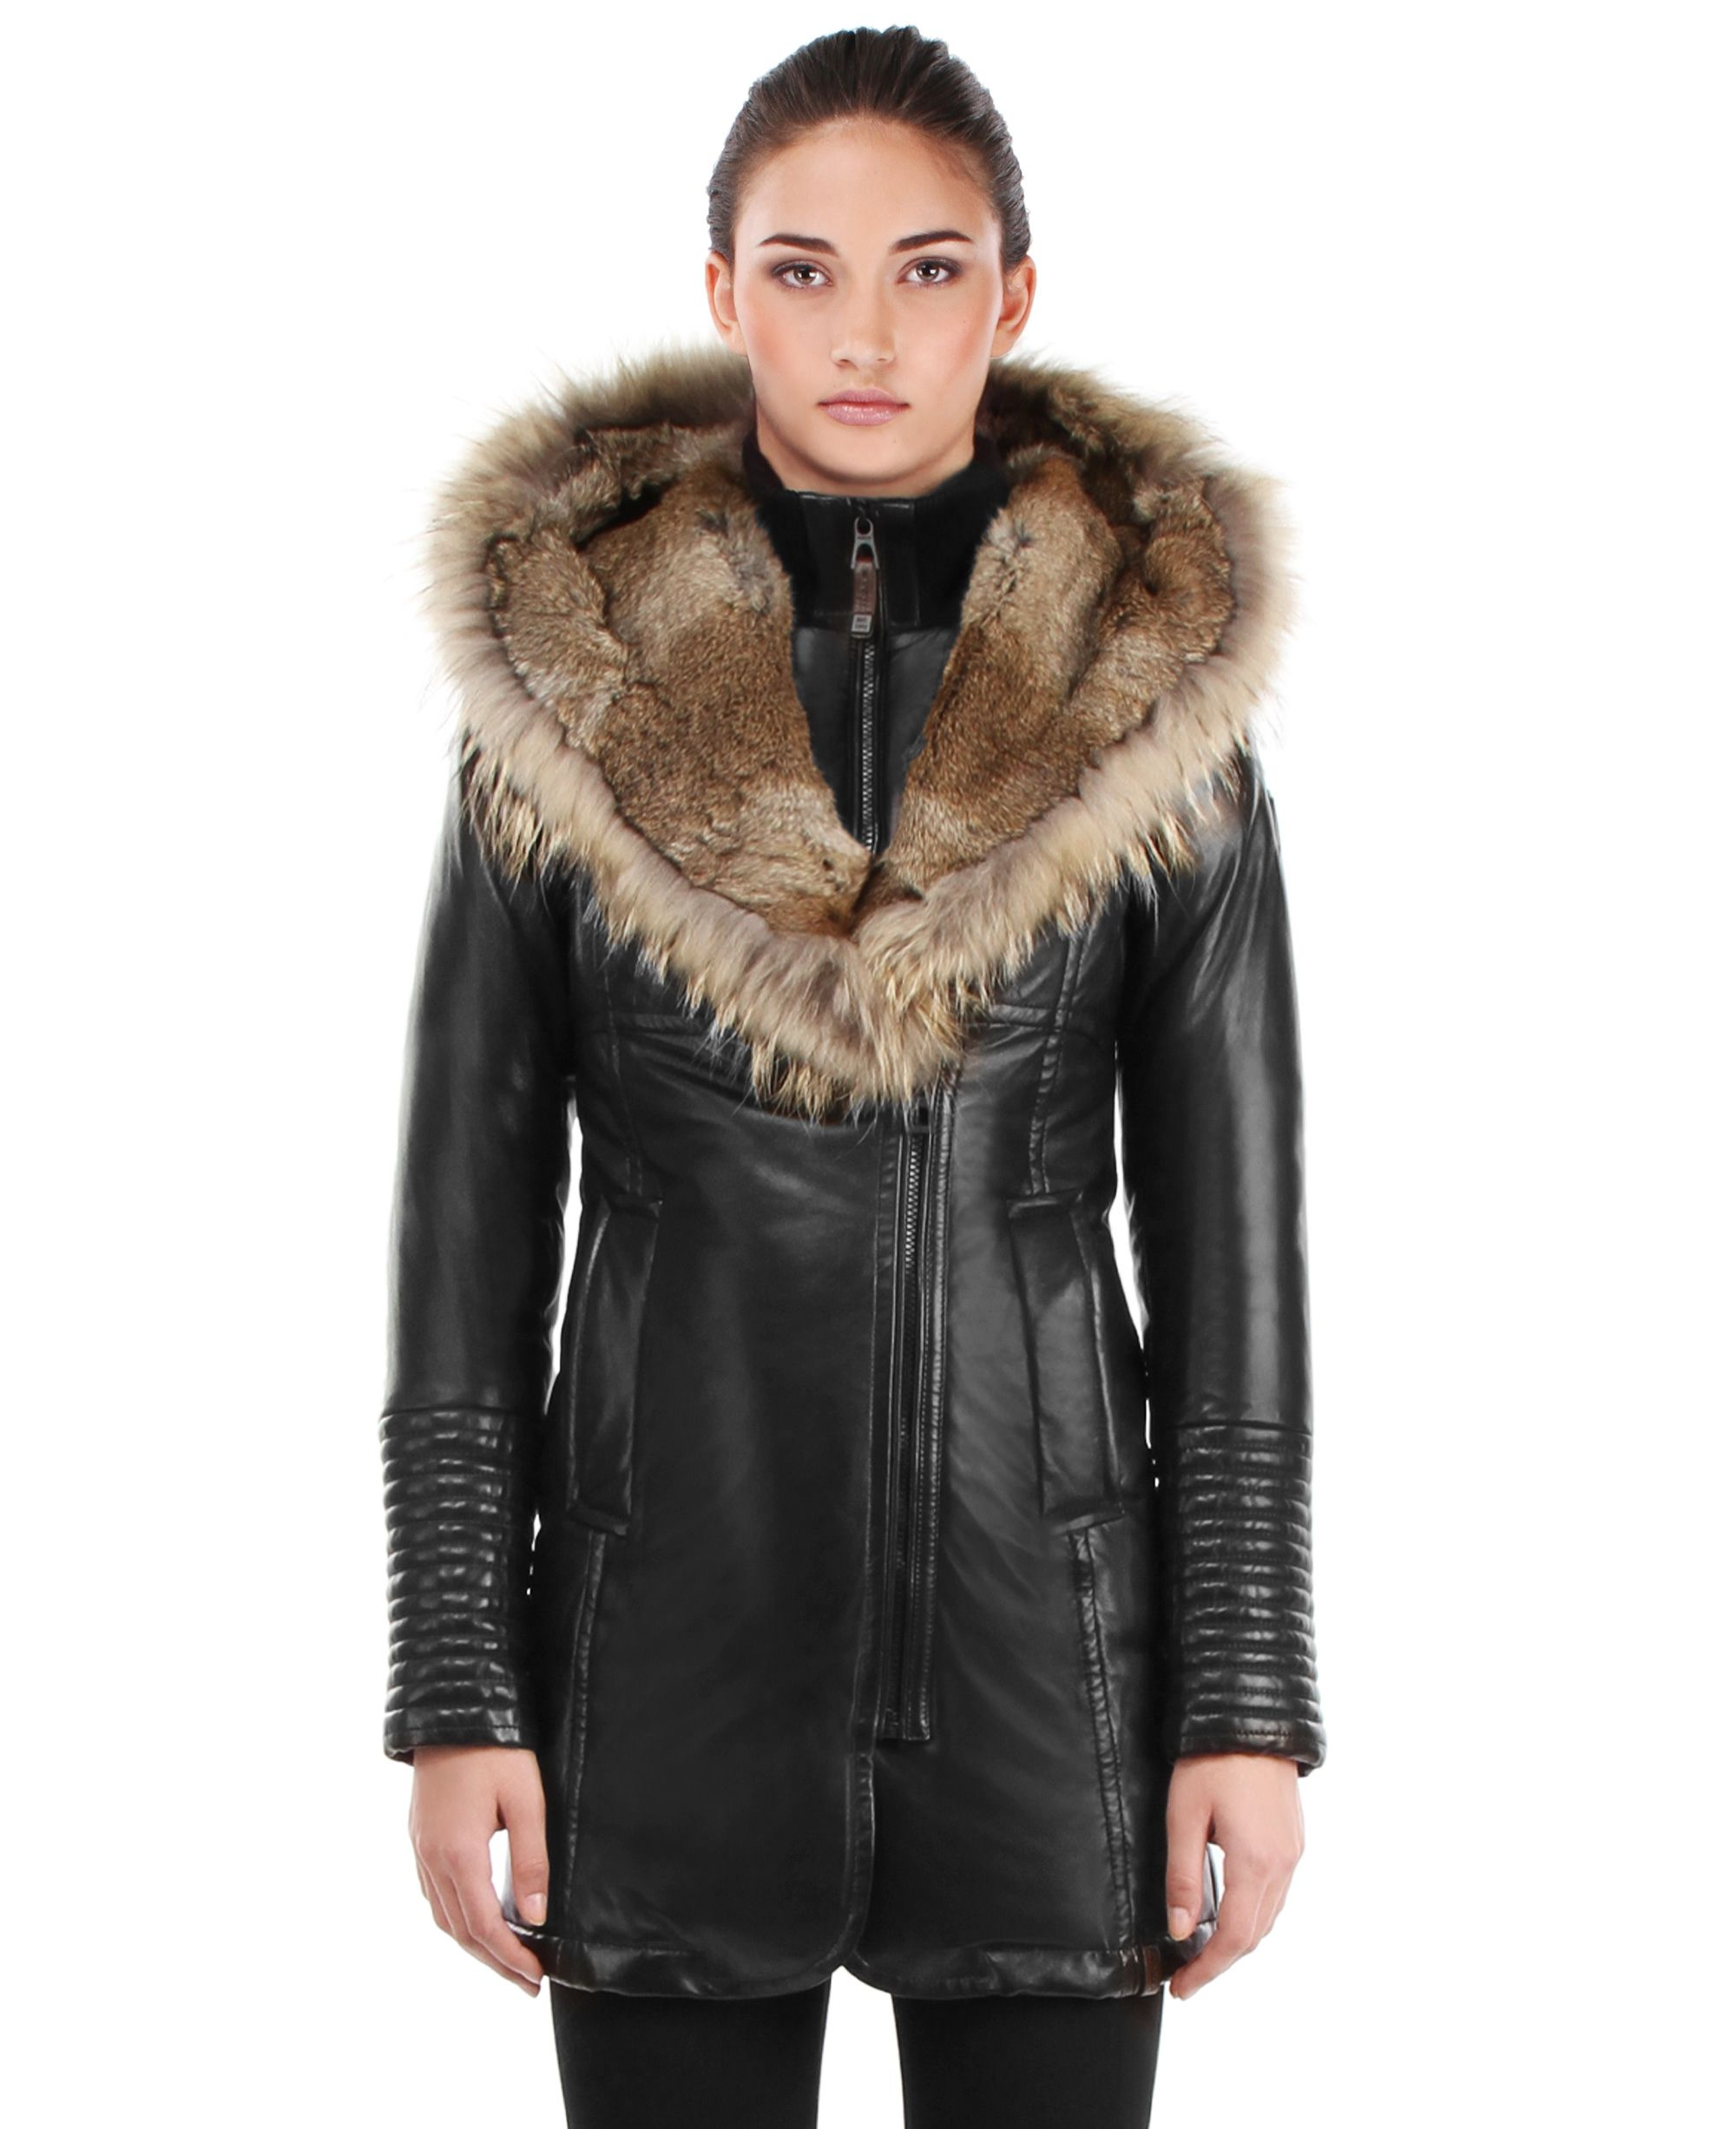 1aca68b7d26 RUDSAK OUTERWEAR (BLACK / NATURAL, GENUINE LAMB LEATHER) | ADELYNA ...